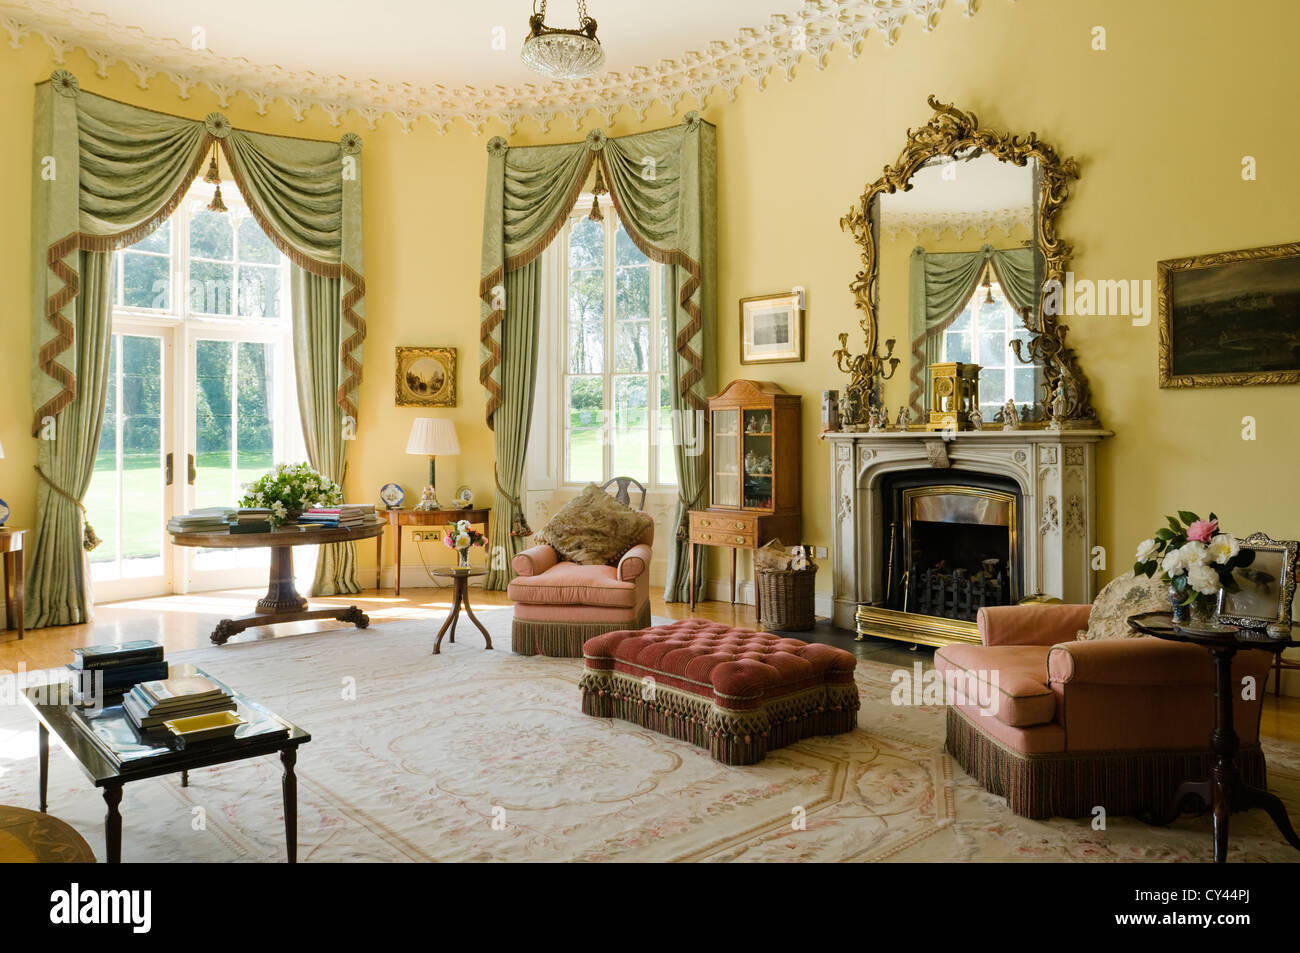 Pale Green Fringed Curtains In Yellow Drawing Room With